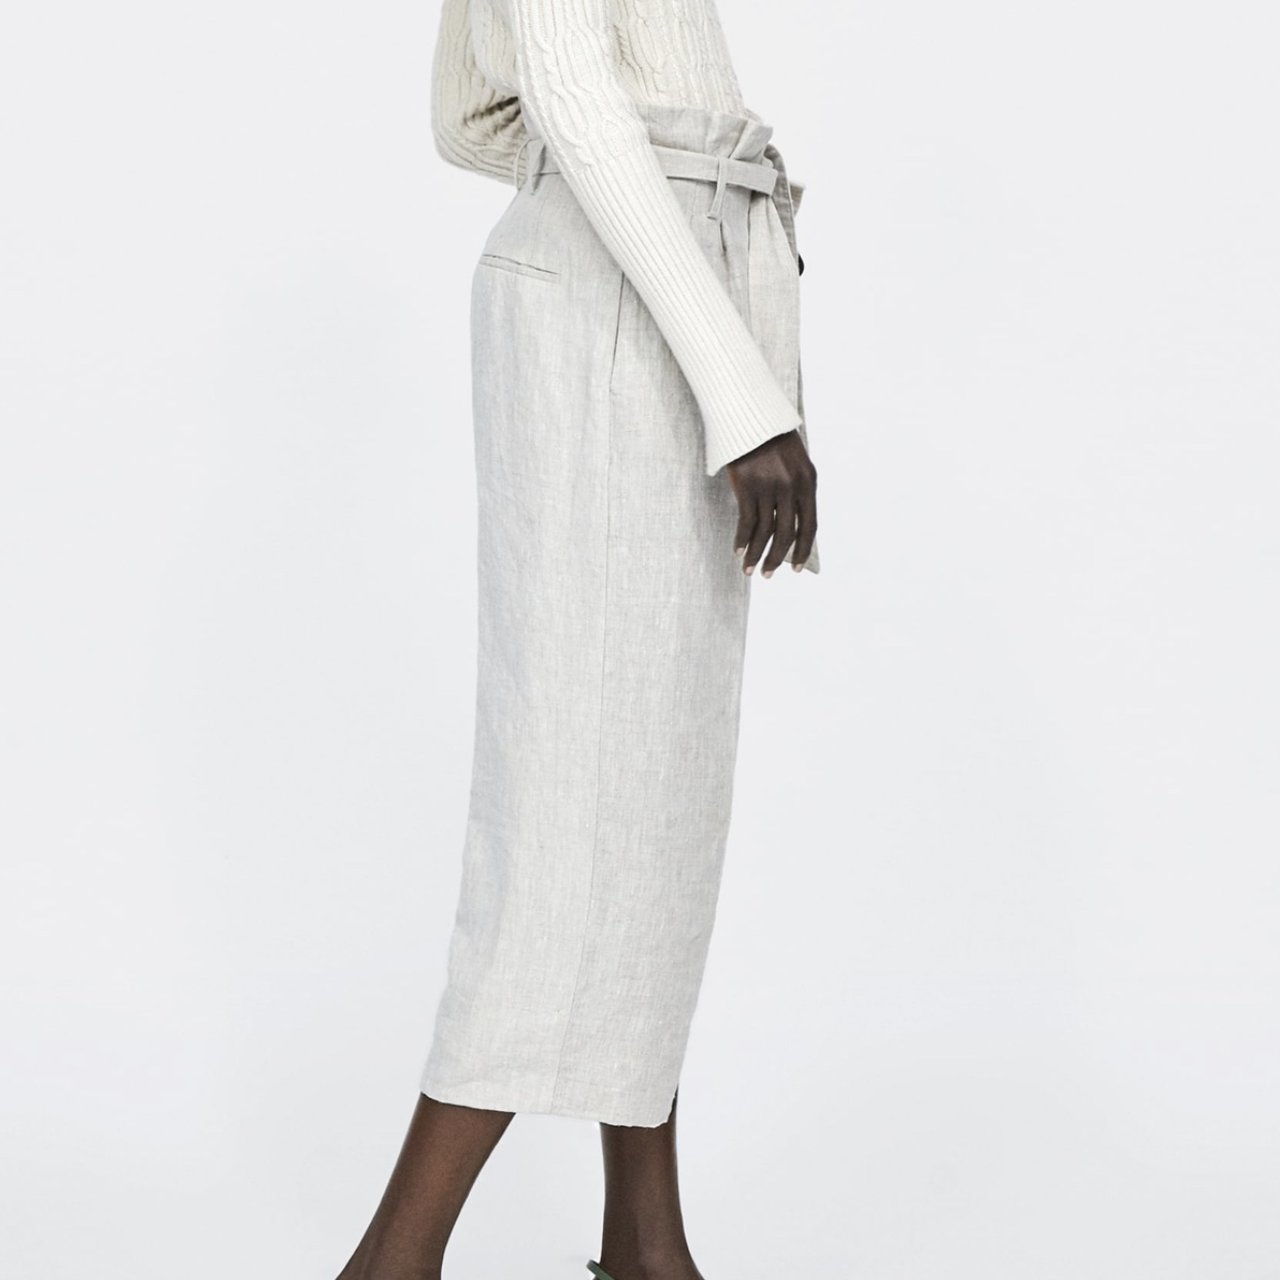 2bbda8a5cee67c Zara Linen Trousers with Belt Tagged